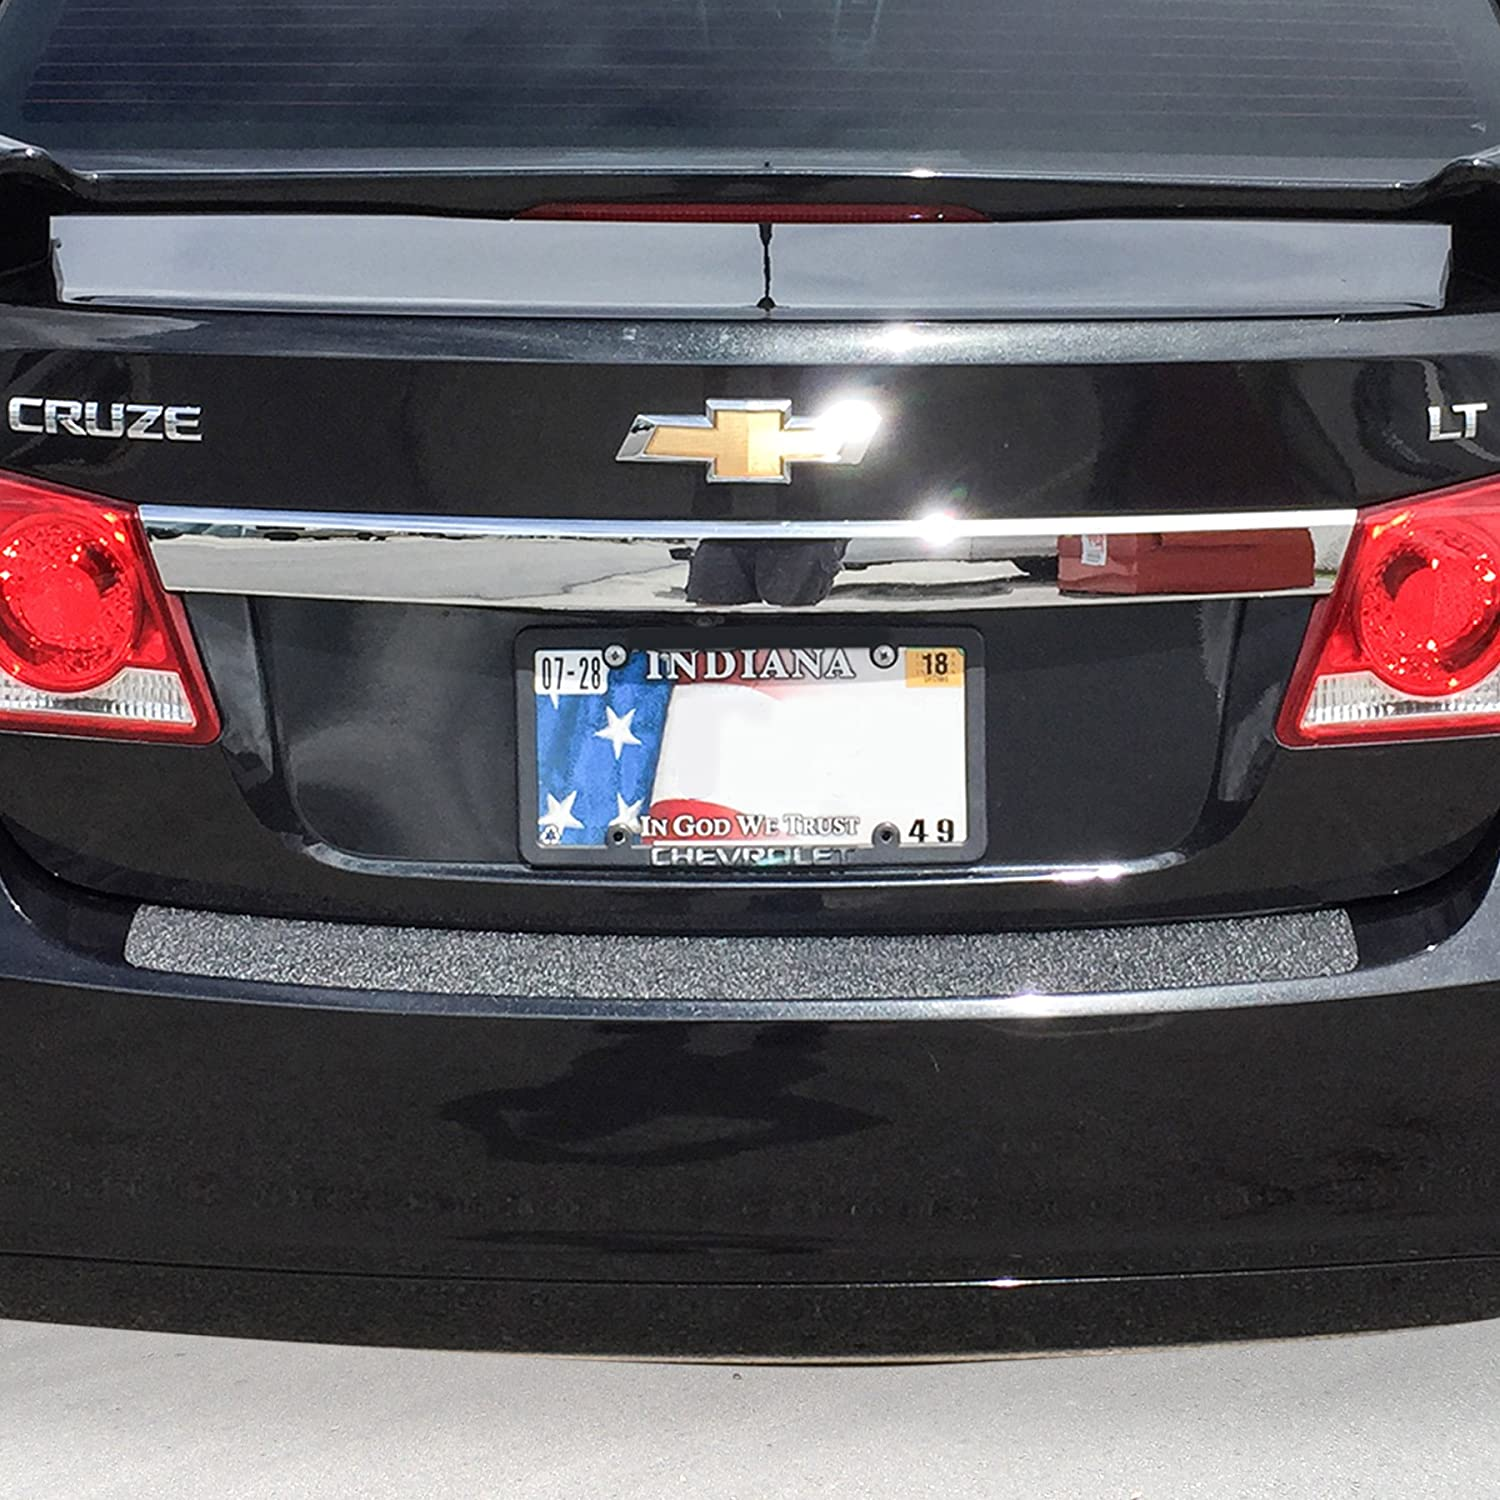 Red Hound Auto Rear Bumper Paint Protection Film 2011-2015 Compatible with Chevy Cruze 1pc Custom Guard Clear Applique Cover Self Healing Invisible Cover Wet Install